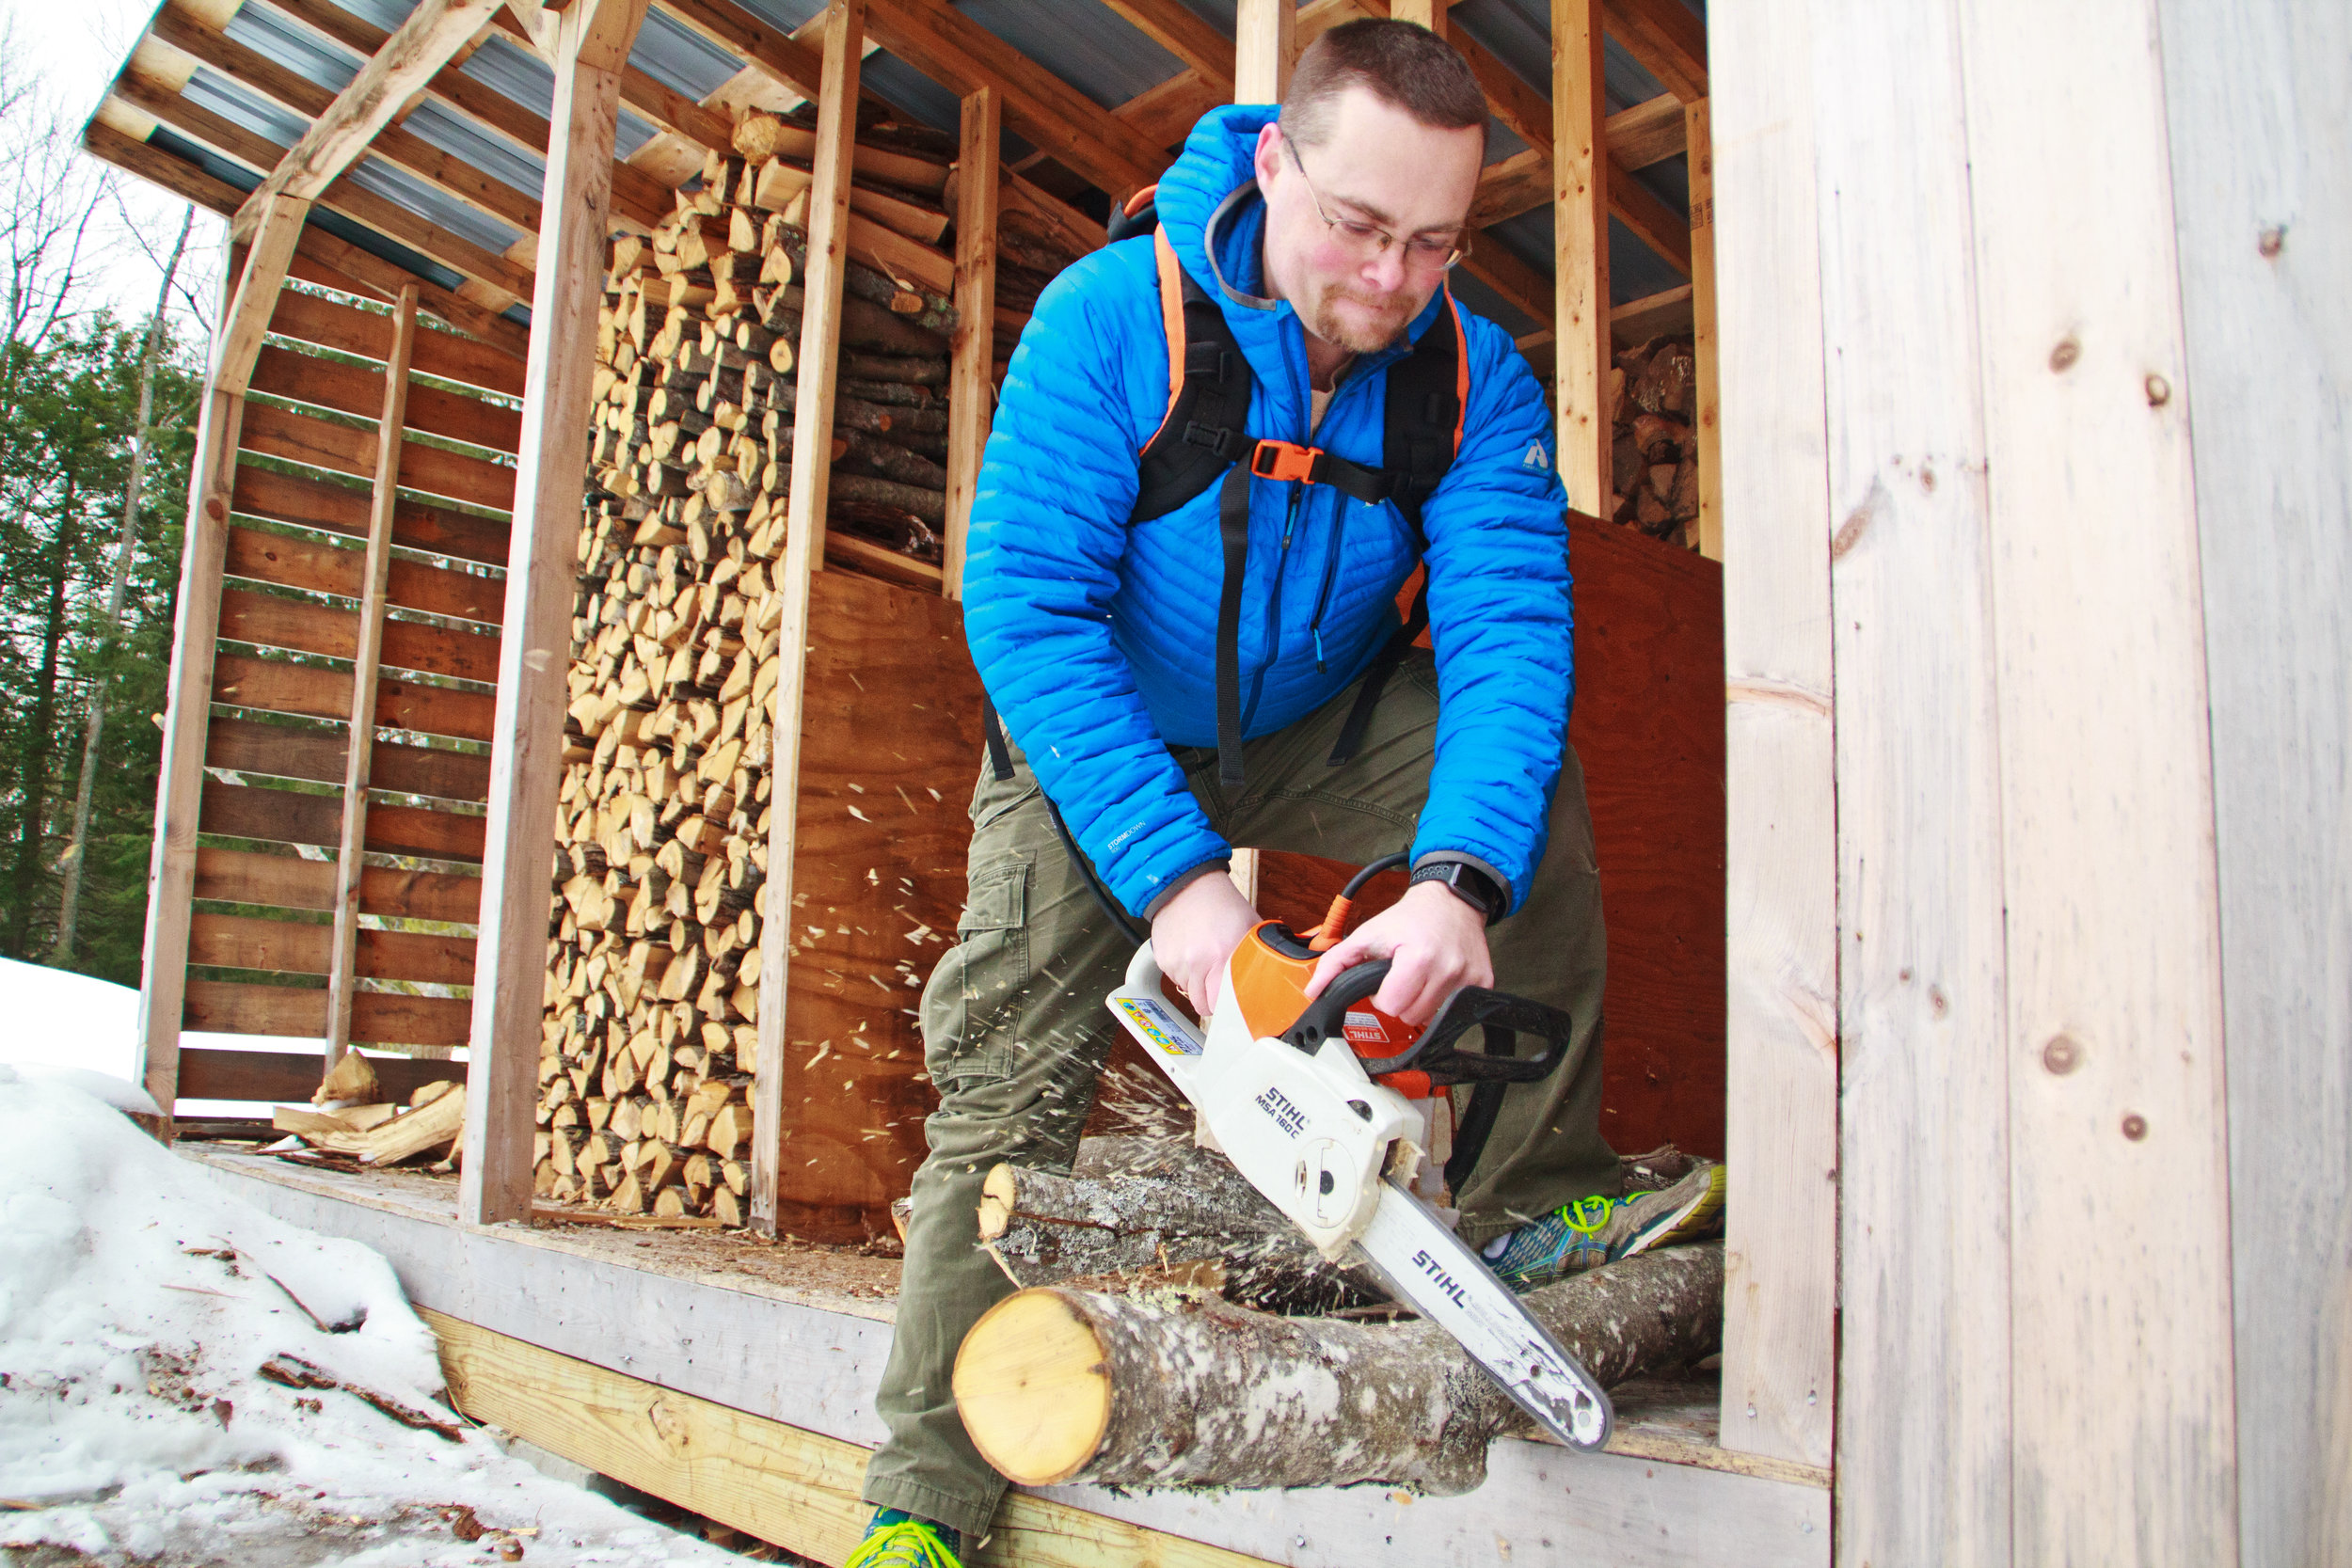 Matt Thomas has eliminated all fossil fuel-fired heating in his home, relying on an array of electric Stihl yard equipment to cut wood for heat.